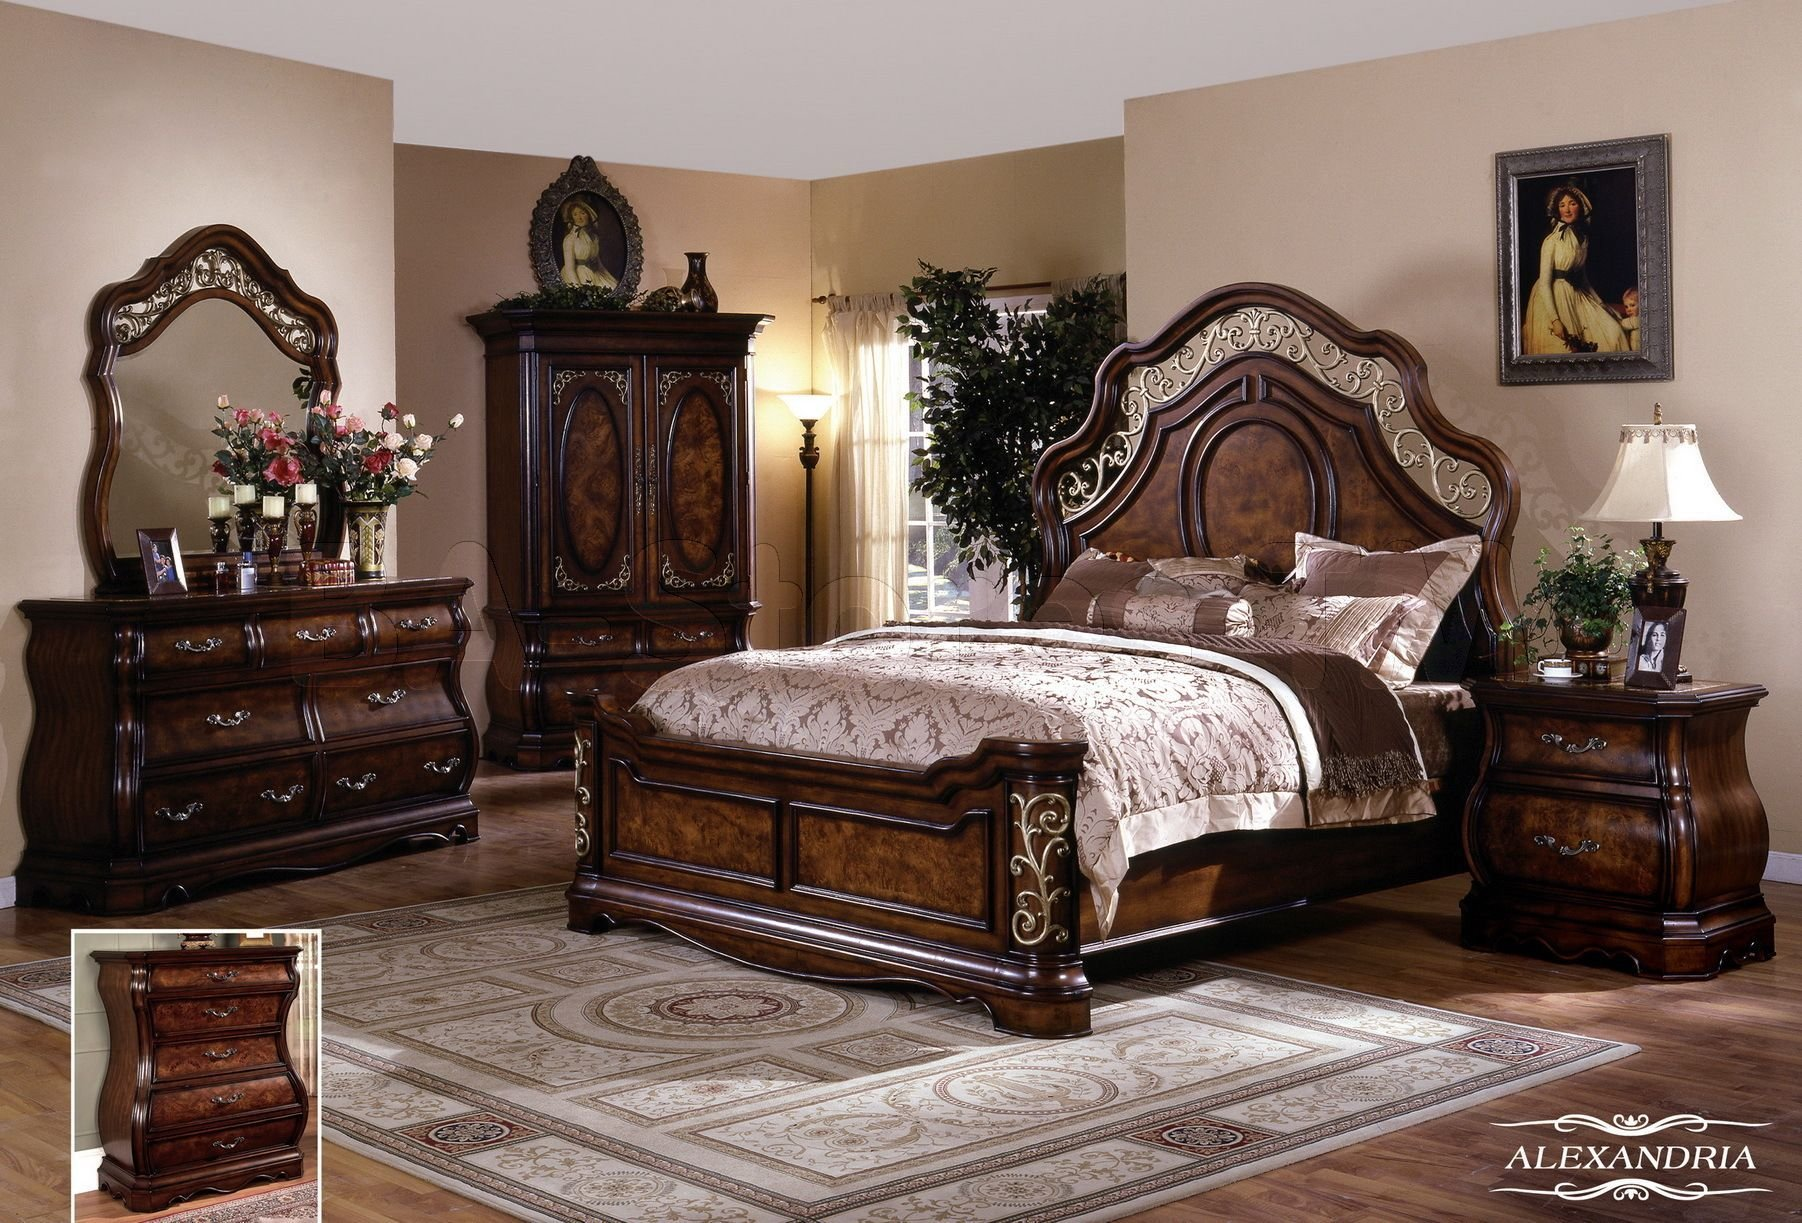 Best Alexandria 5 Pc Bedroom Set Queen Bed Dresser Mirror With Pictures